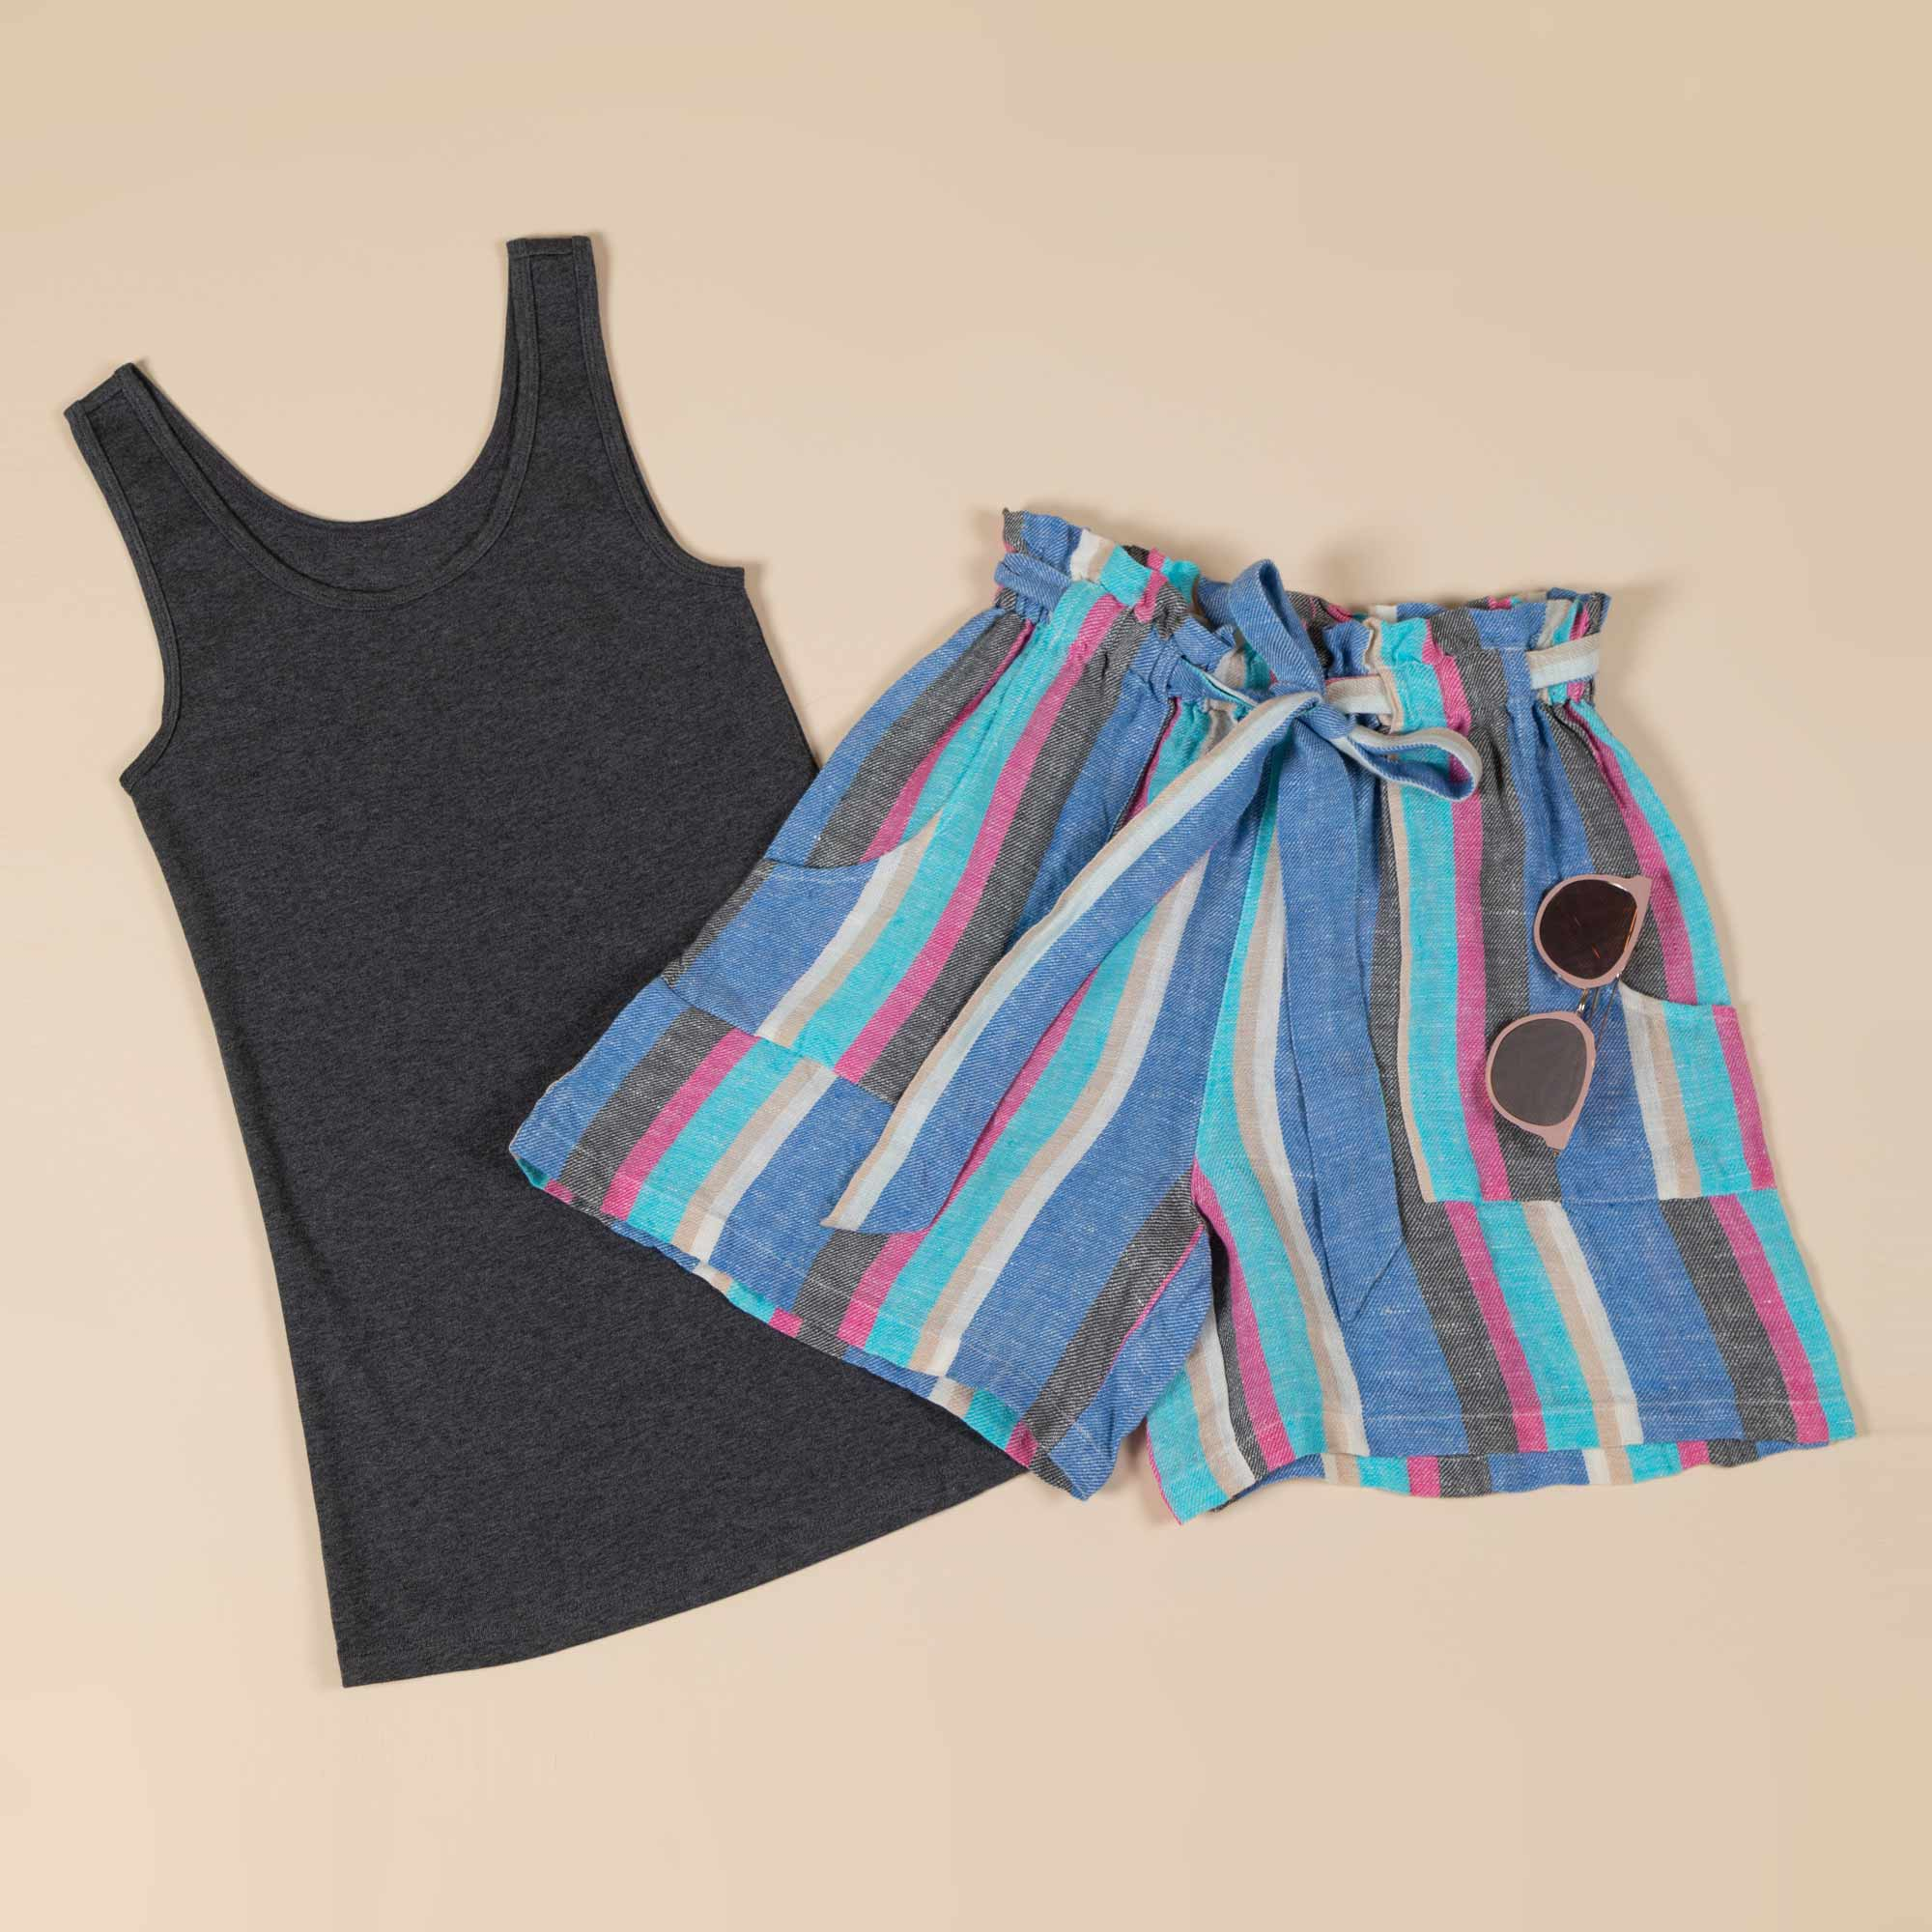 Artisan crafted shorts — with sunglasses hung on the pocket — lay atop a solid colored tank top.